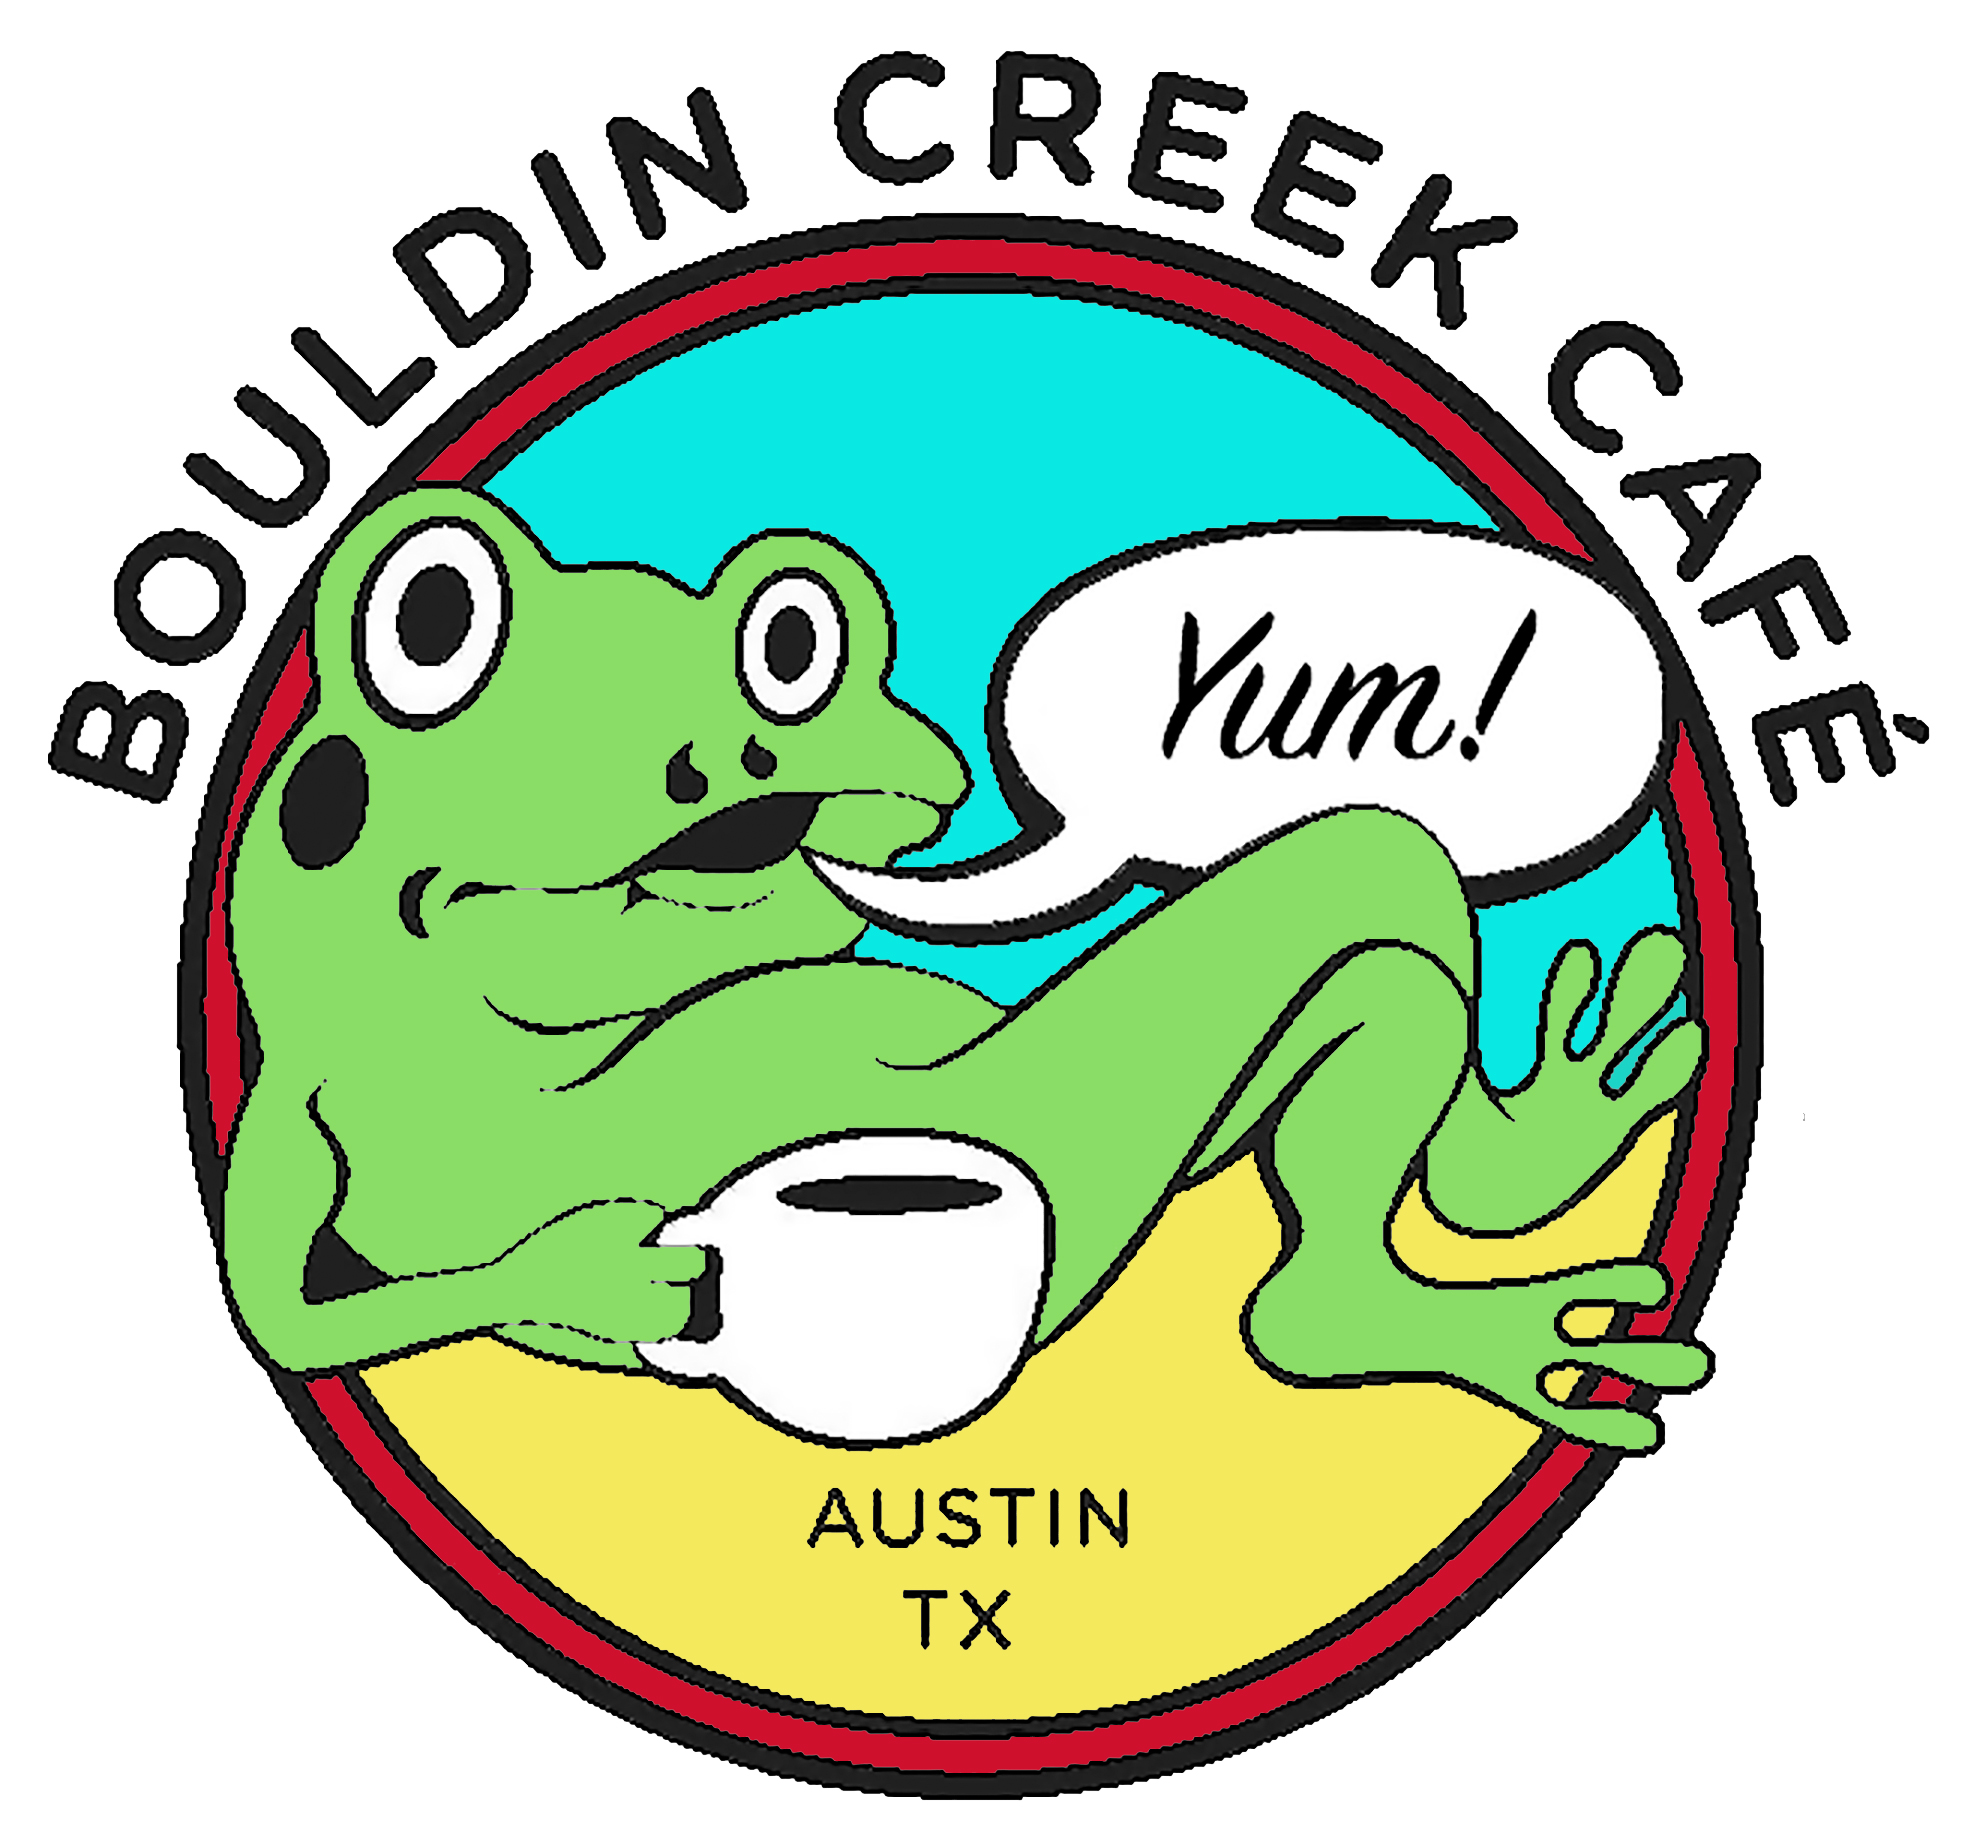 Bouldin Creek Cafe Logo